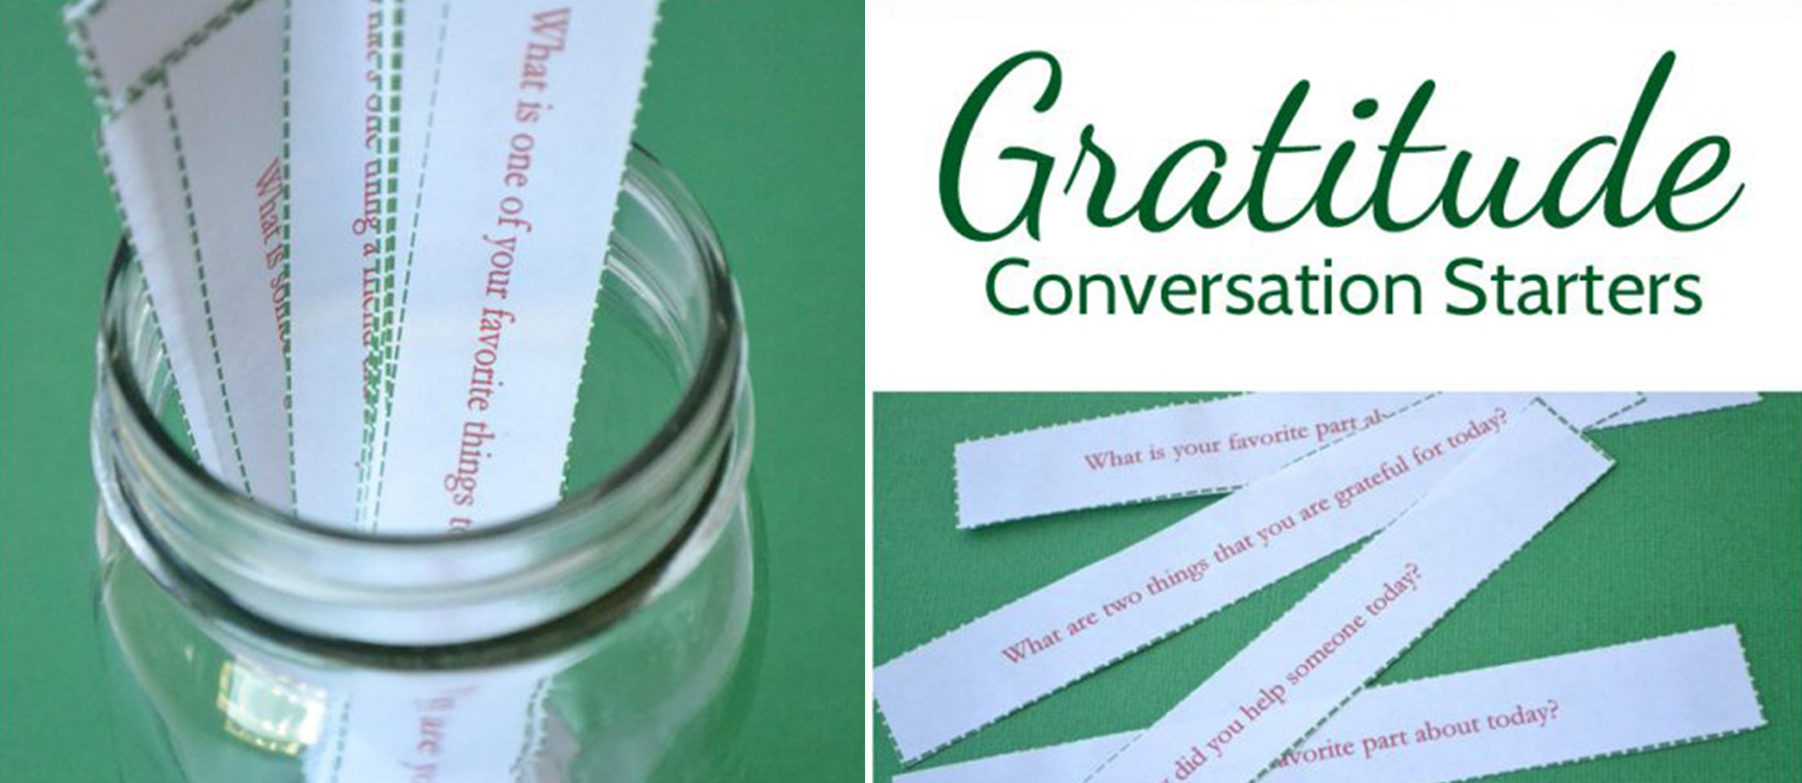 This month your family can focus on being thankful while you share these fun and thoughtful conversation starters. Try them in the car, at the dinner table or any time you are all together. Cultivate an attitude of gratitude as a family!